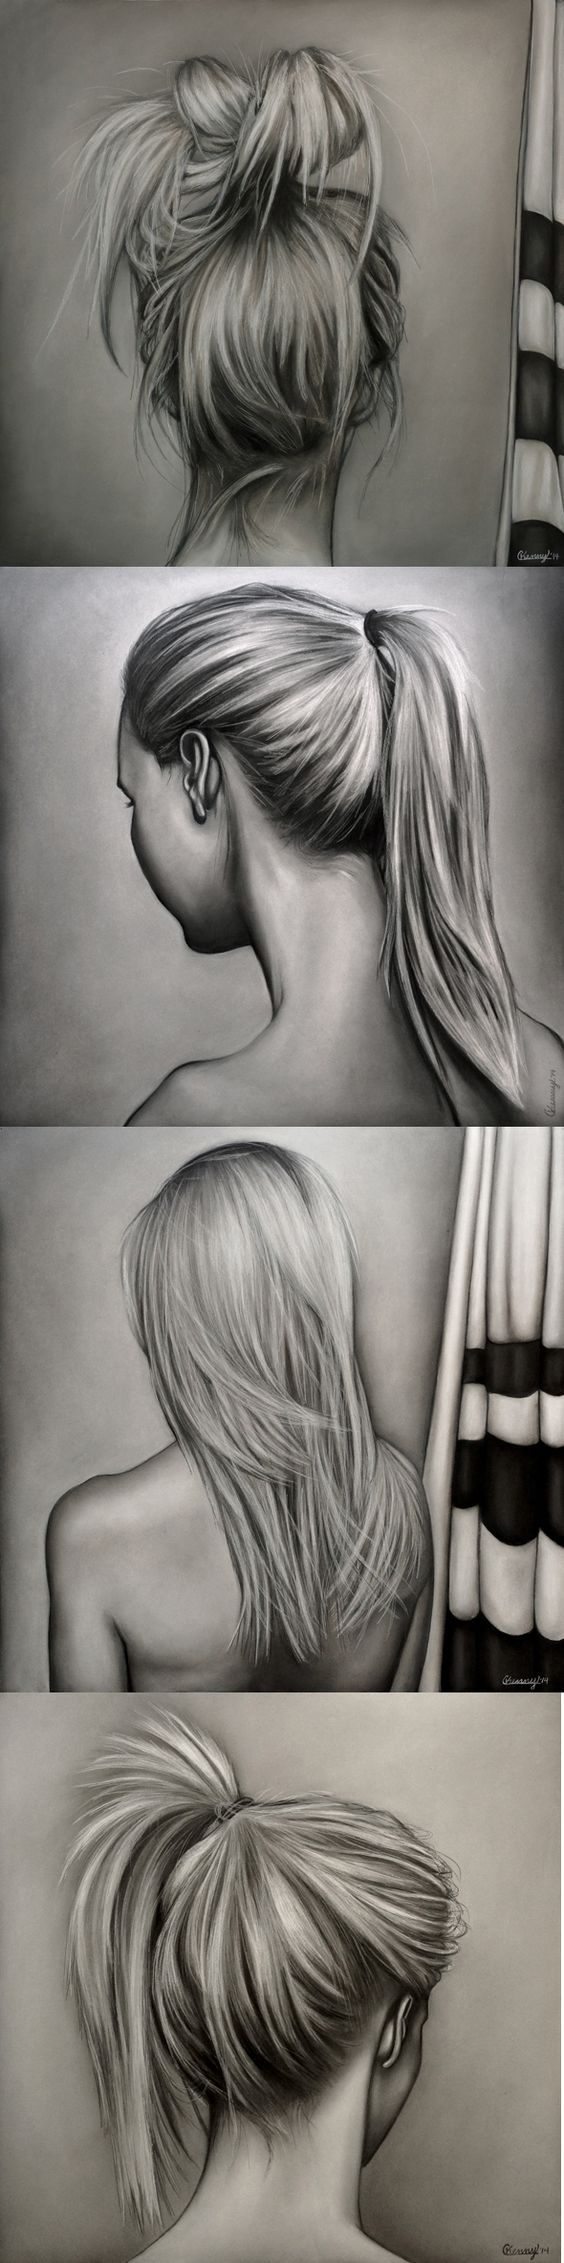 realistic drawings 15